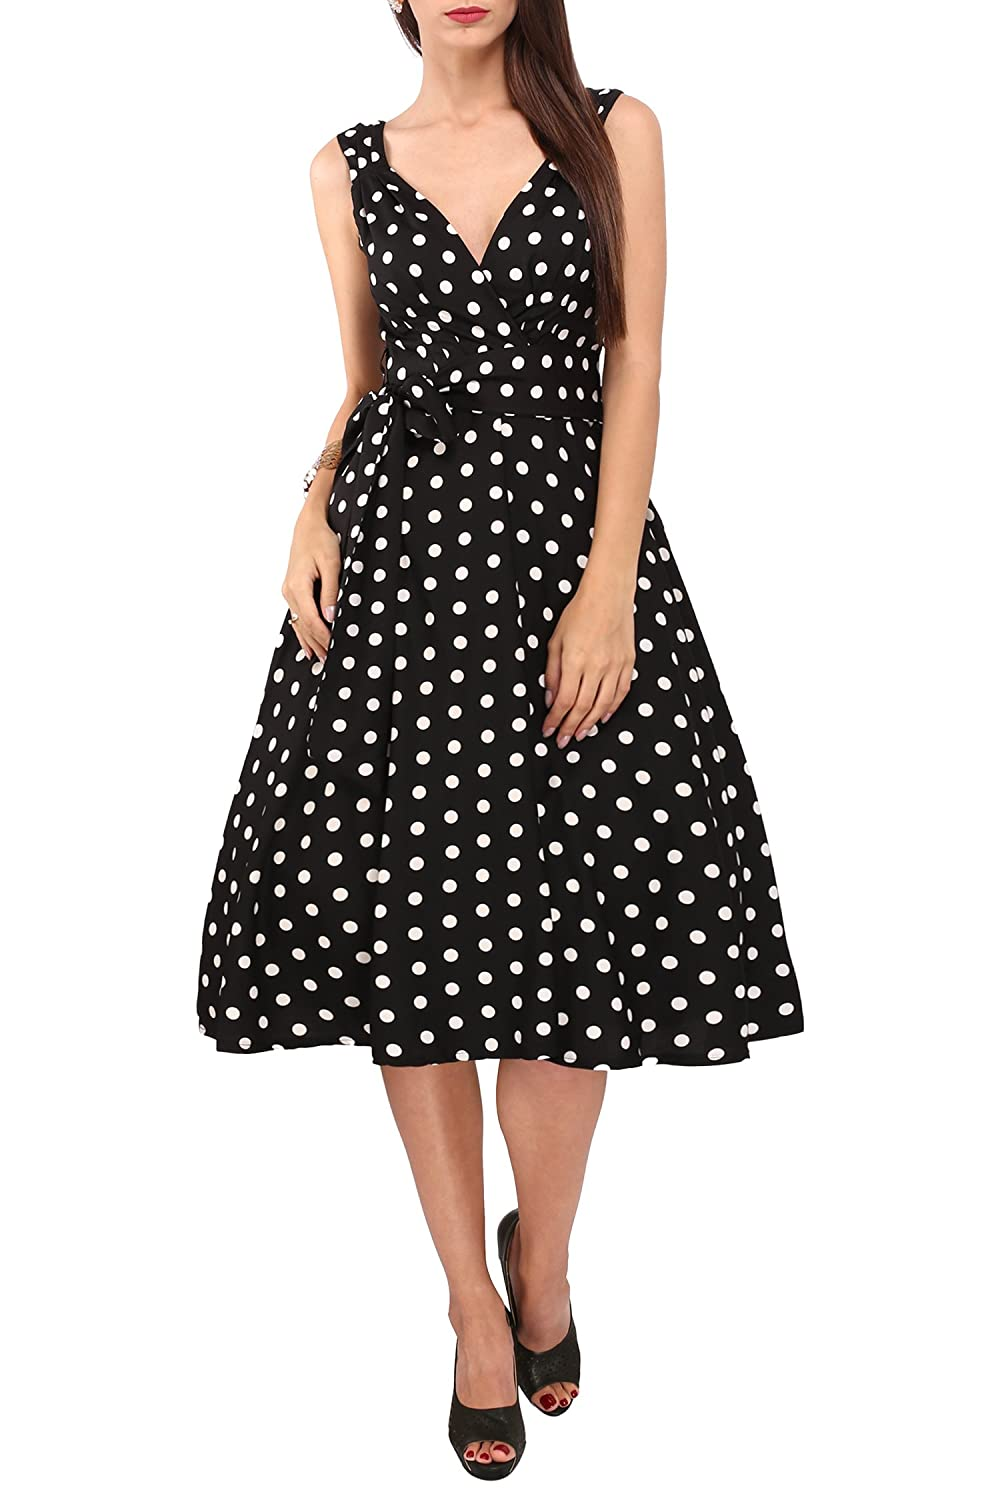 e7af1cb647b Polka Dot Printed 1940s and 1950s Style Swing Vintage Rockabilly Ladies  Retro Prom Party Dresses Made from 100% Polyester - V Neck Cross-Over Cut